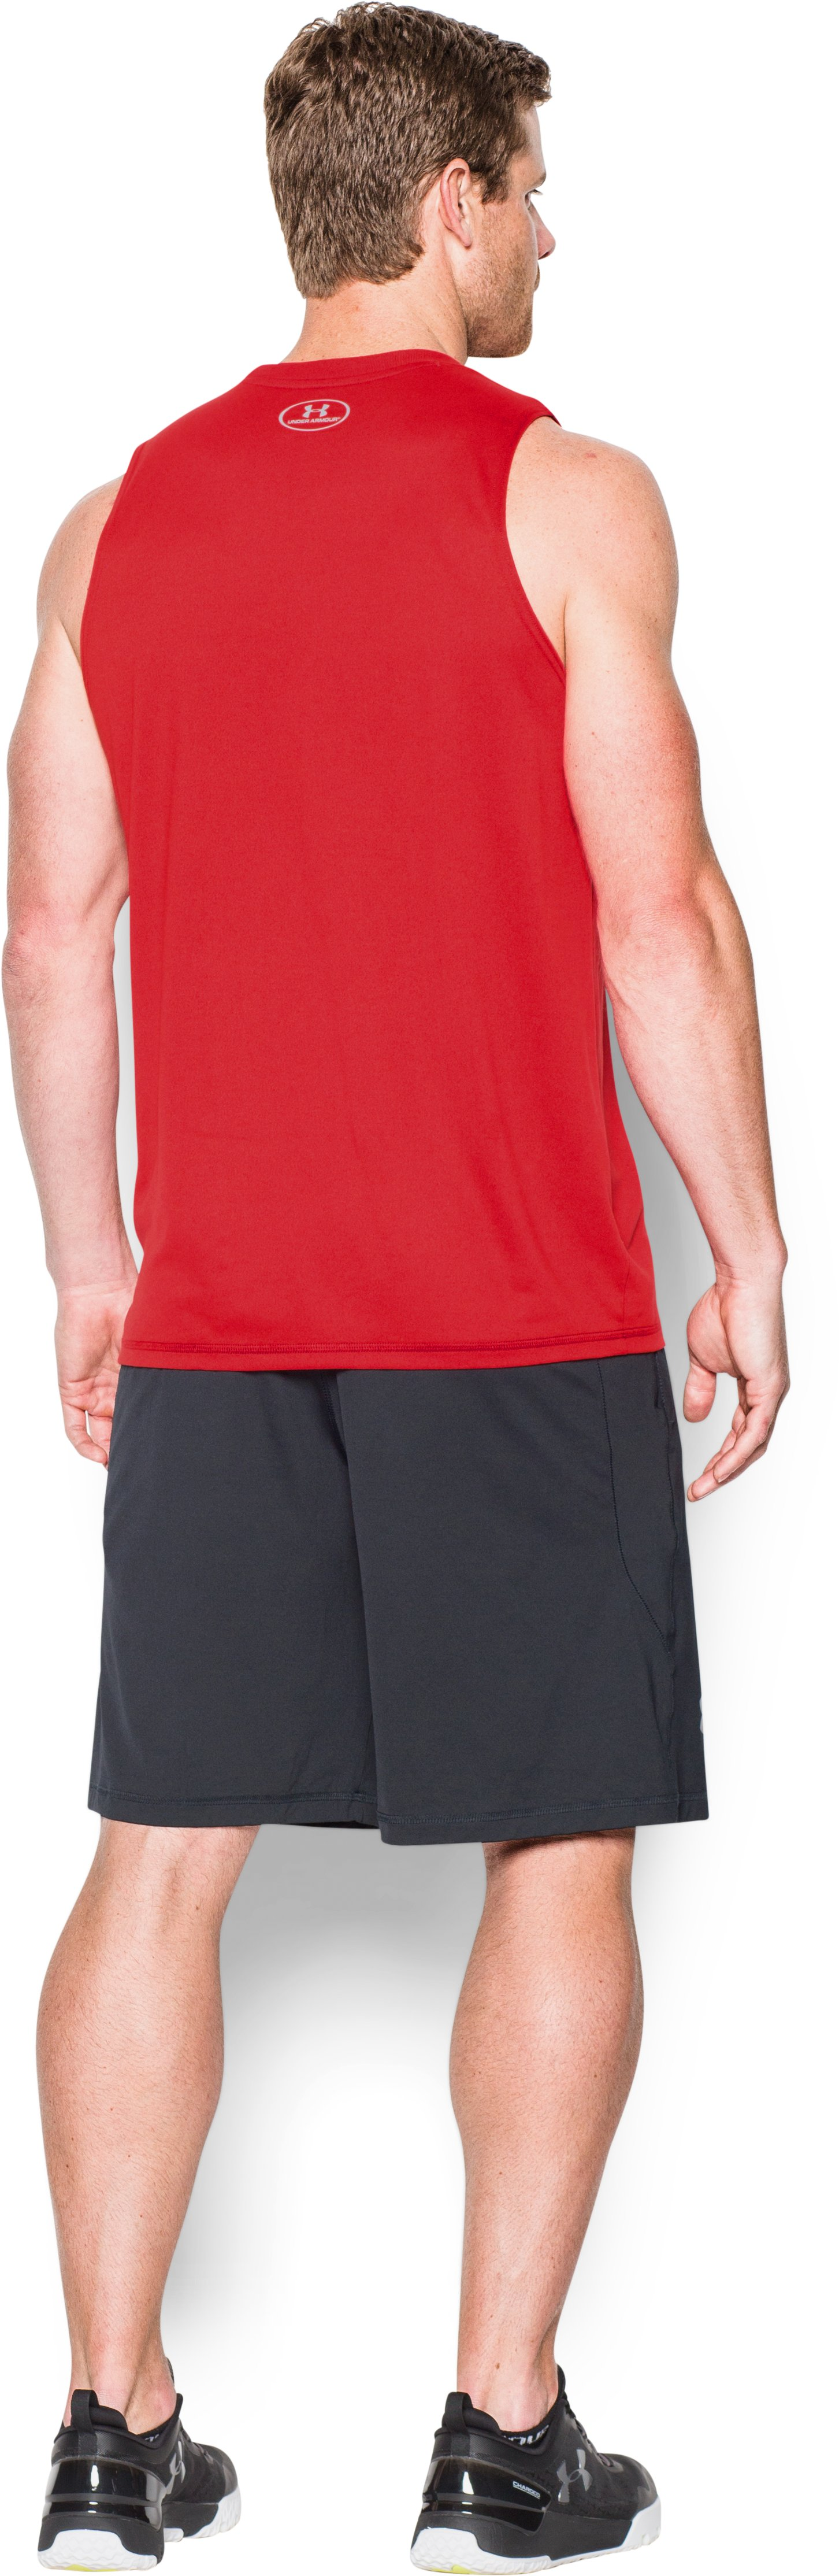 Men's St. Louis Cardinals Tech™ Tank, Red, Back